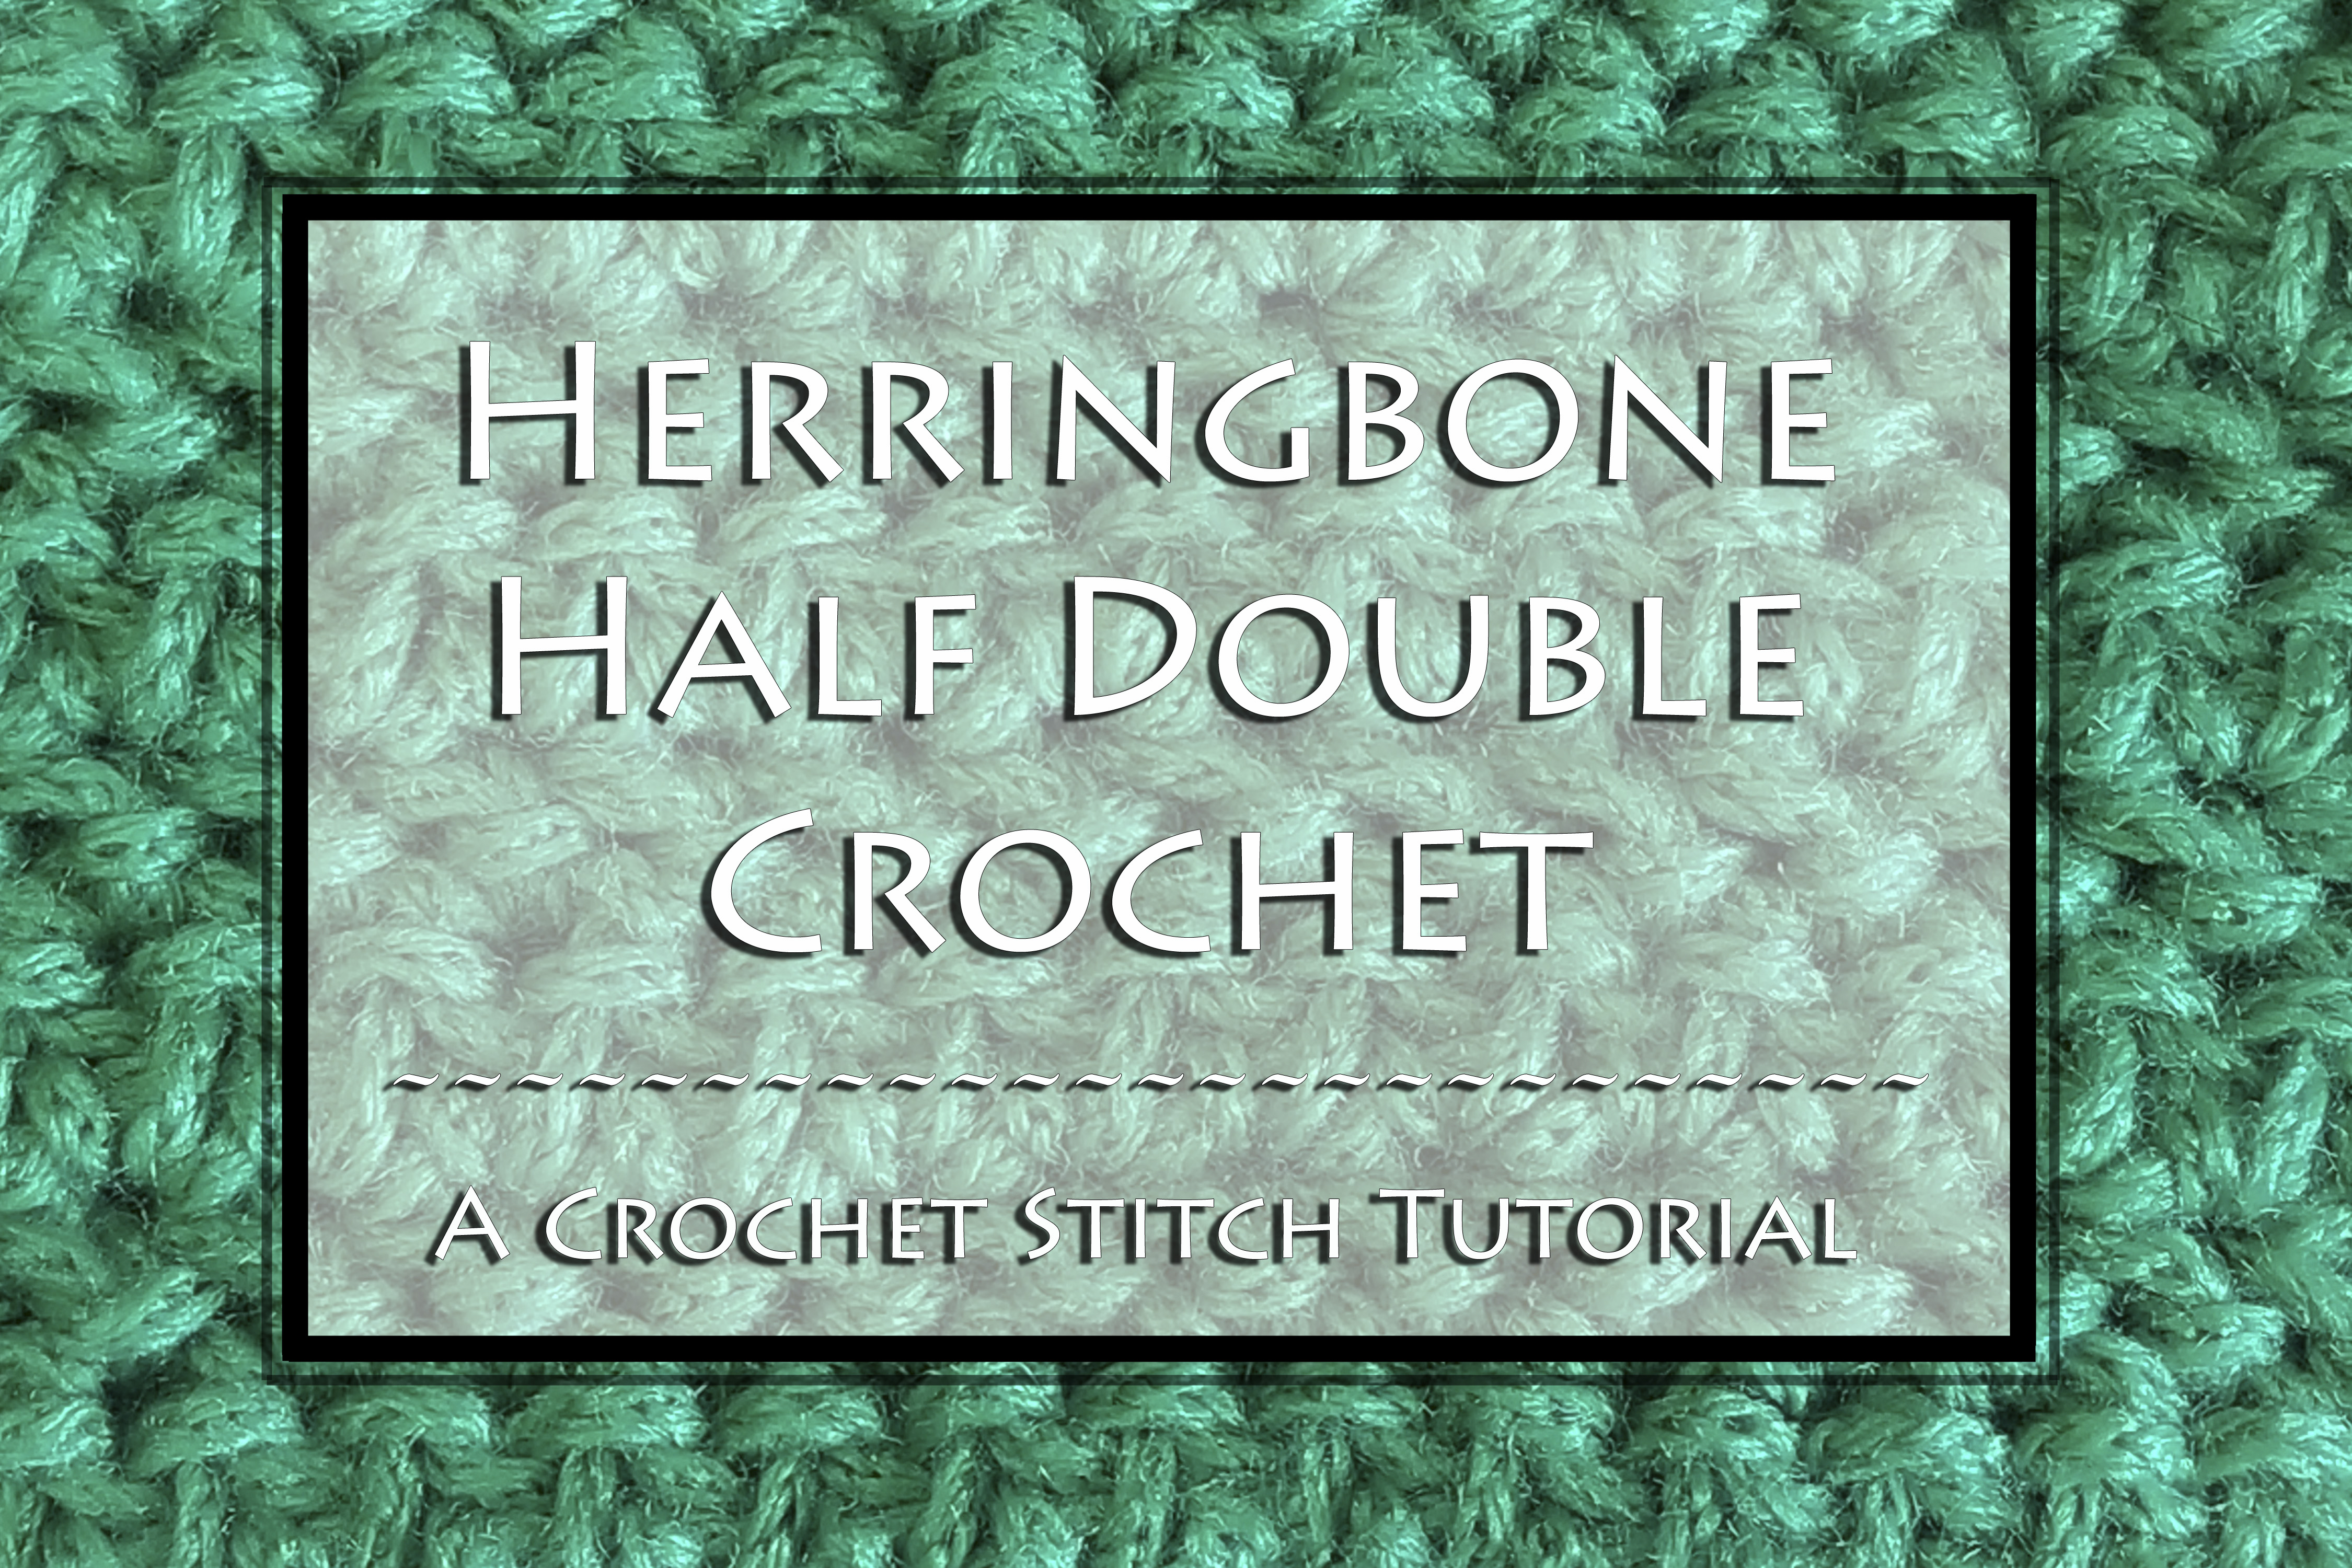 Herringbone Half Double Crochet Stitch Tutorial by Crystalized Designs